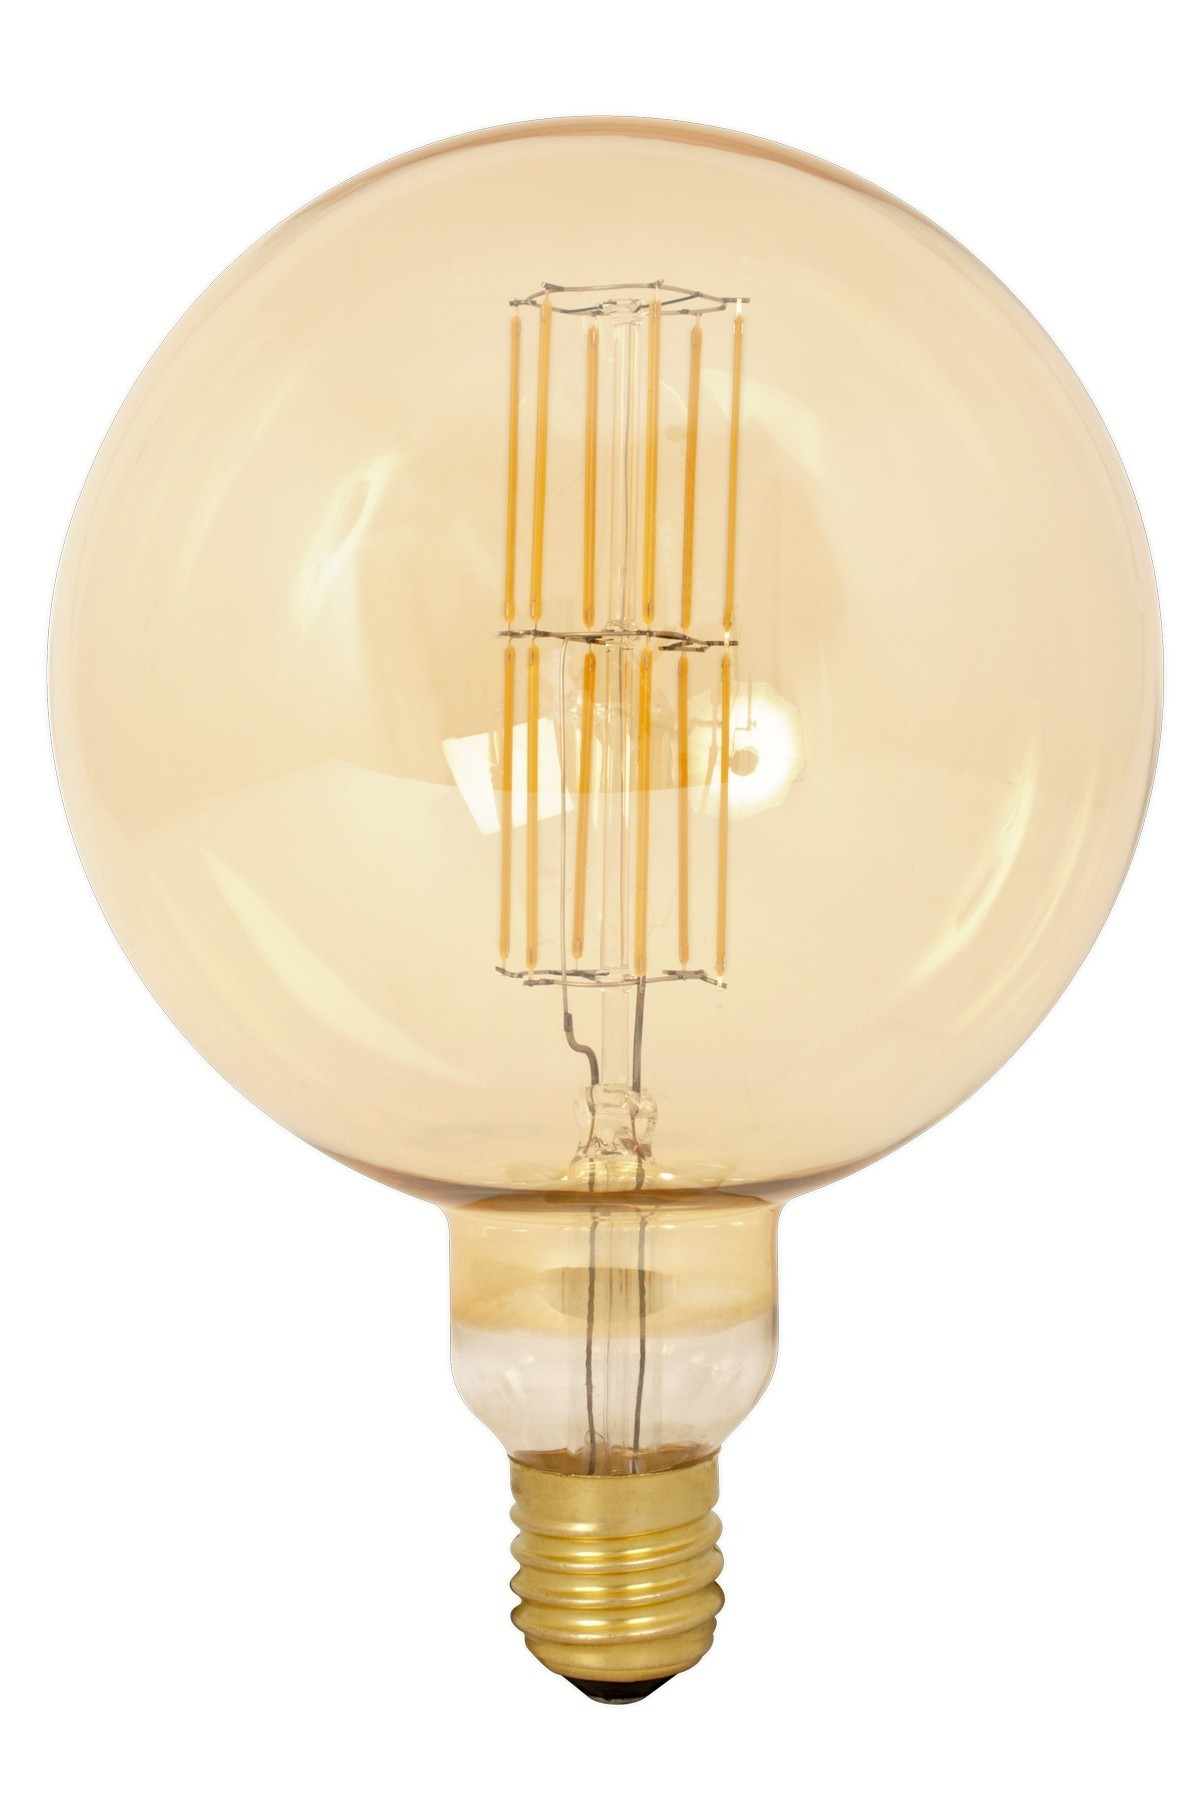 Giant xxl filament splash dimmable led bulb with e27 lampvoet calex led mega globe giant xxl dimmable filament bulb e40 parisarafo Gallery